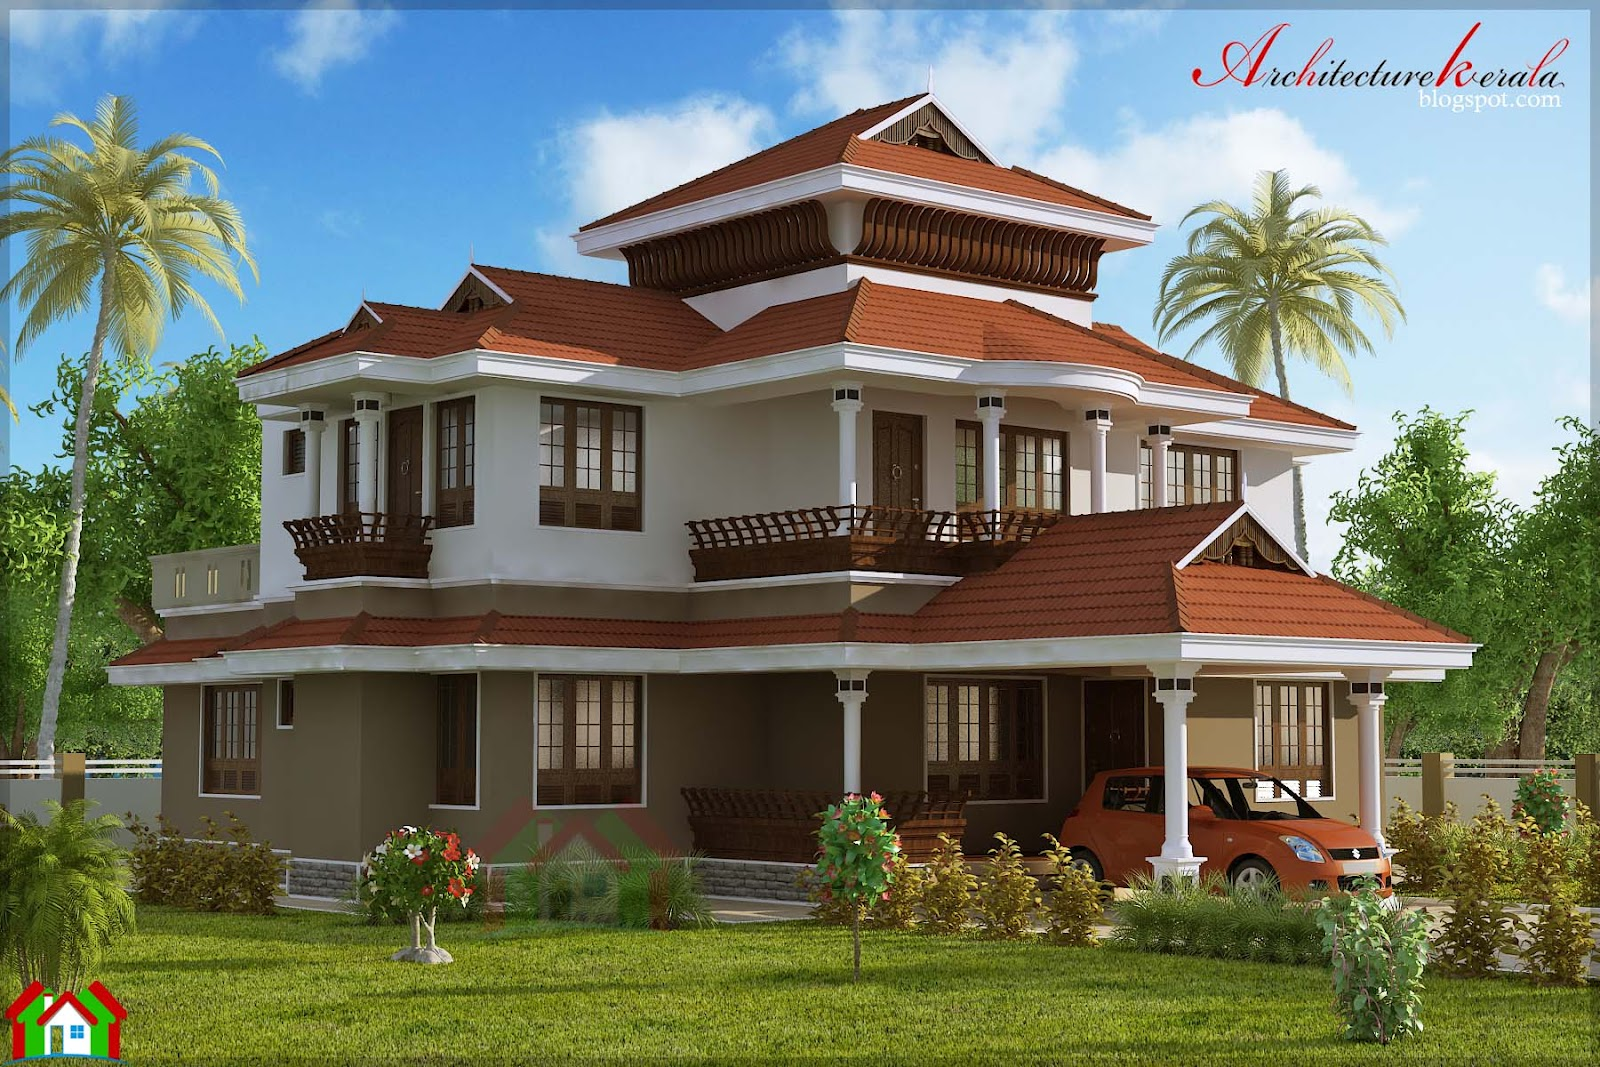 4 bed room traditional style house architecture kerala for Traditional style house